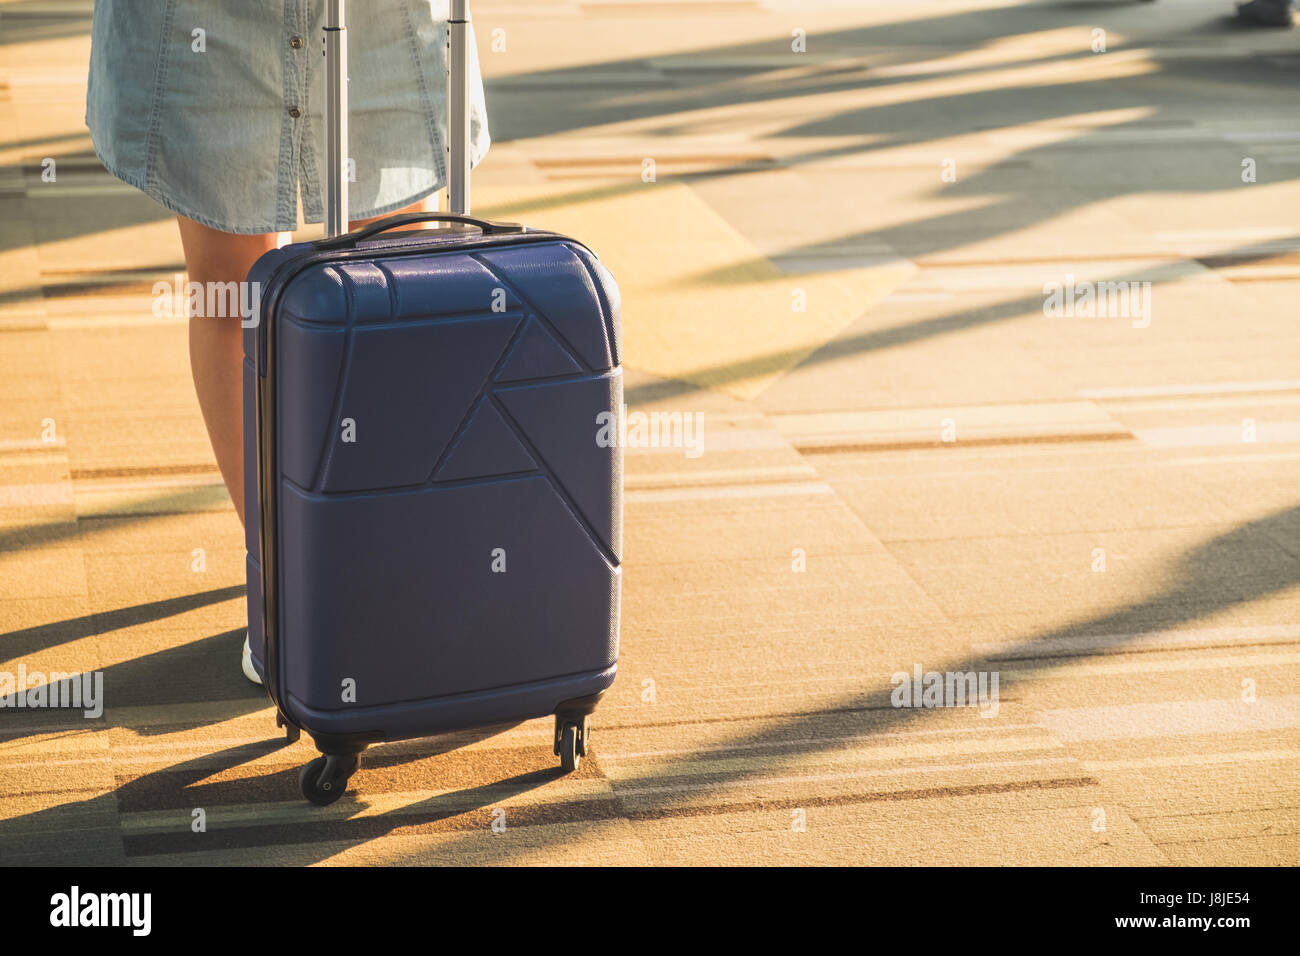 Young casual woman wear white sneakers standing with travel suitcase with morning sunlight through window at airport - Stock Image